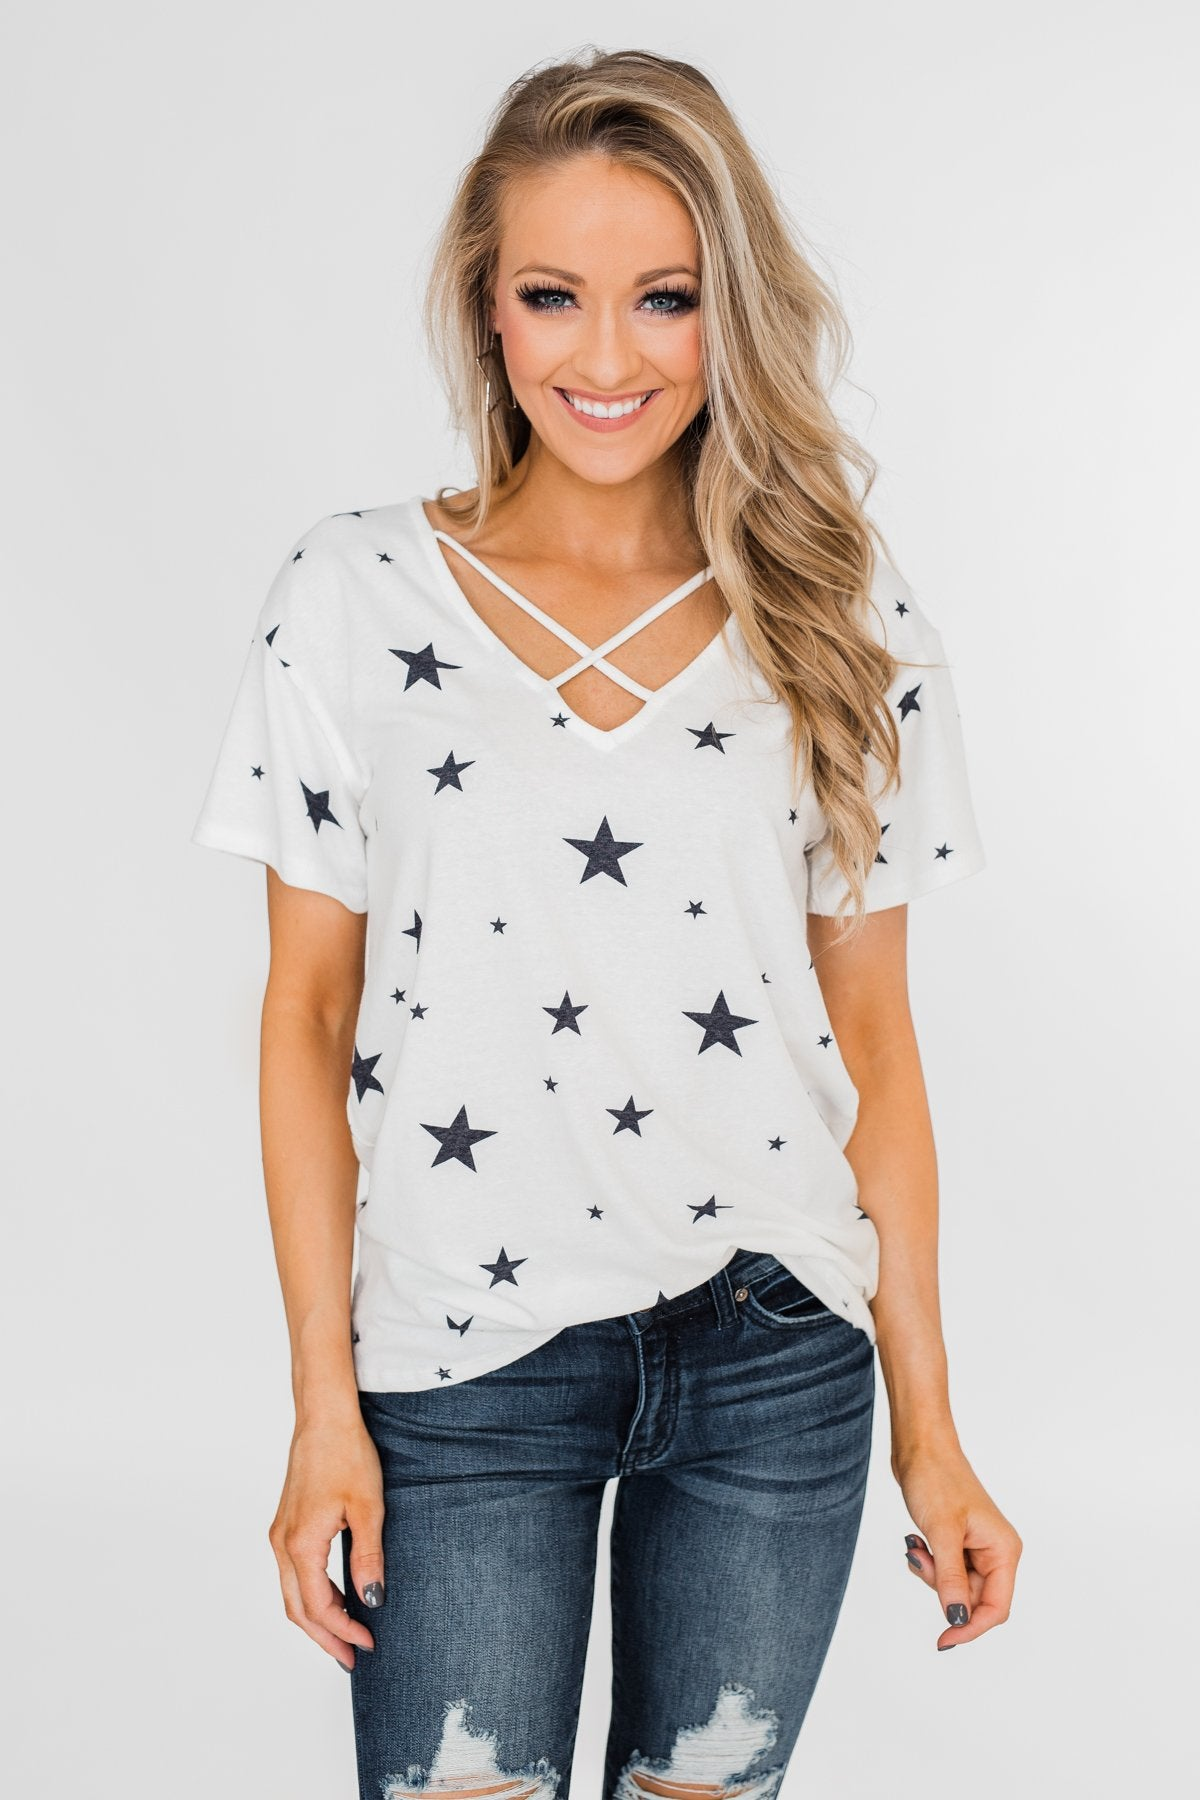 Shine On Criss-Cross Star Top- Ivory